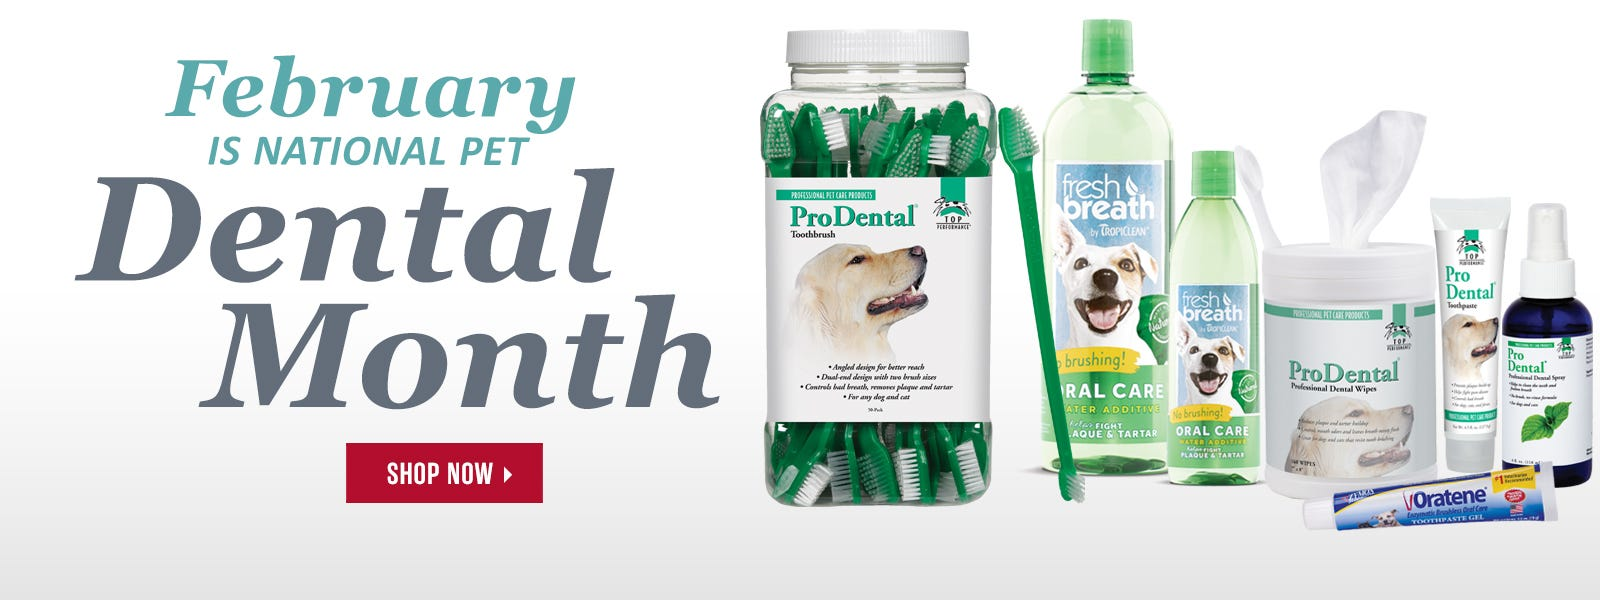 February is National Pet Dental Month!